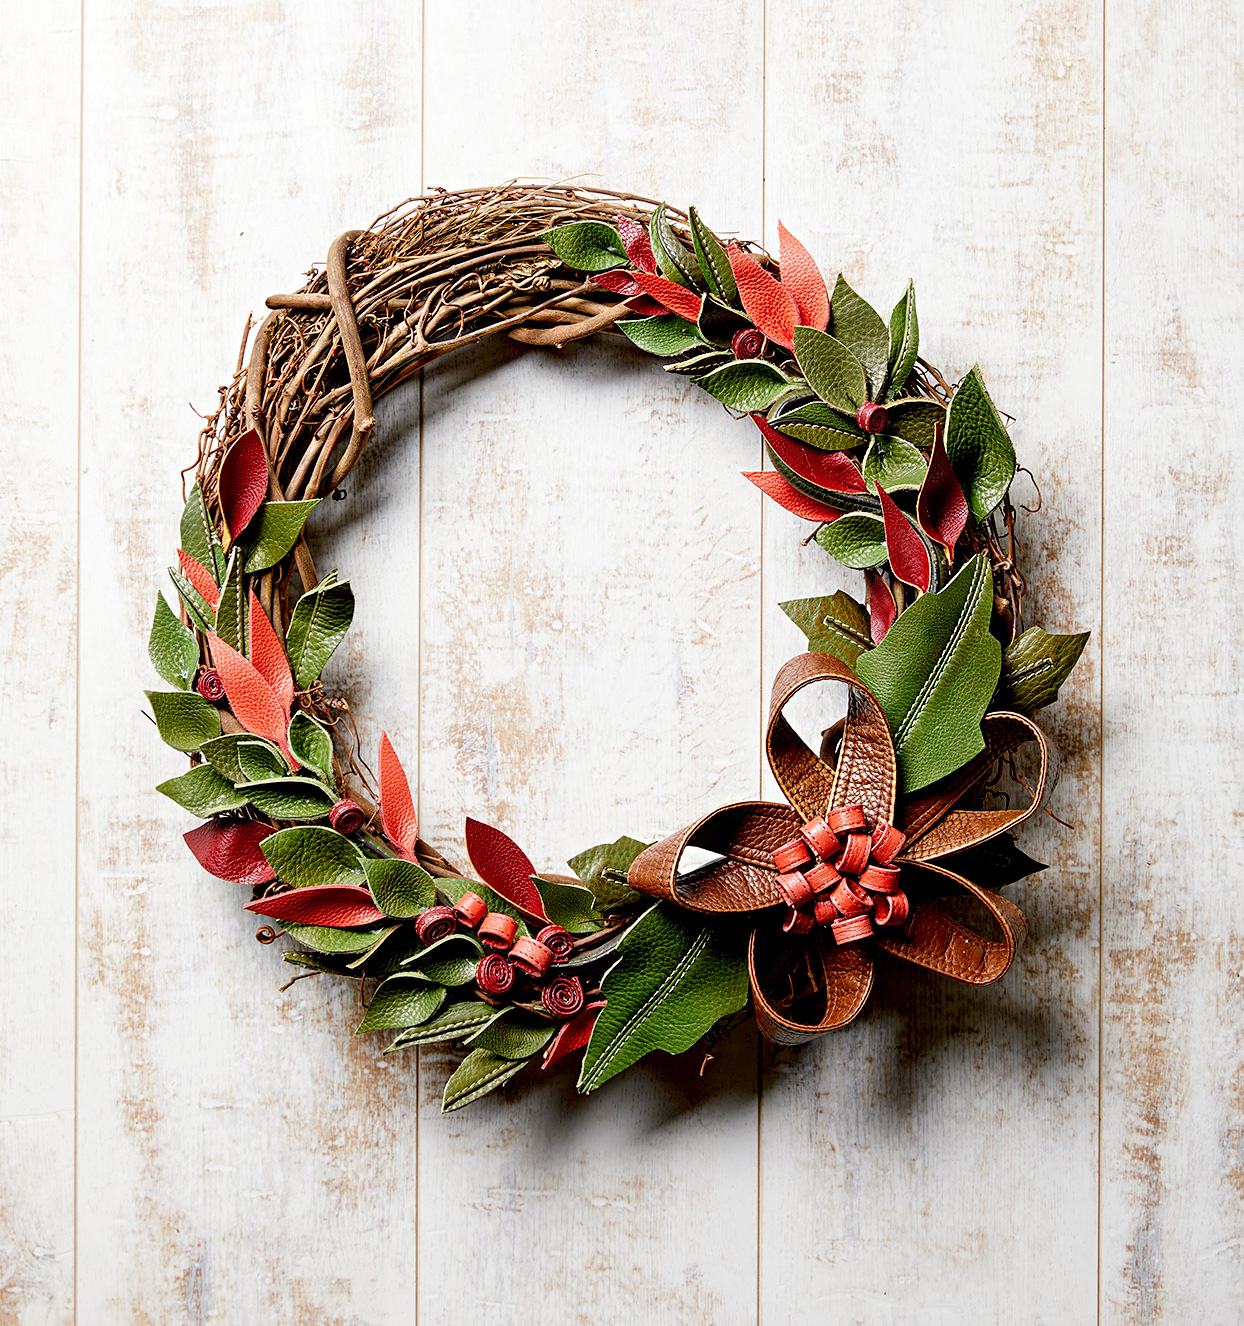 Wreath made of branches and leaves